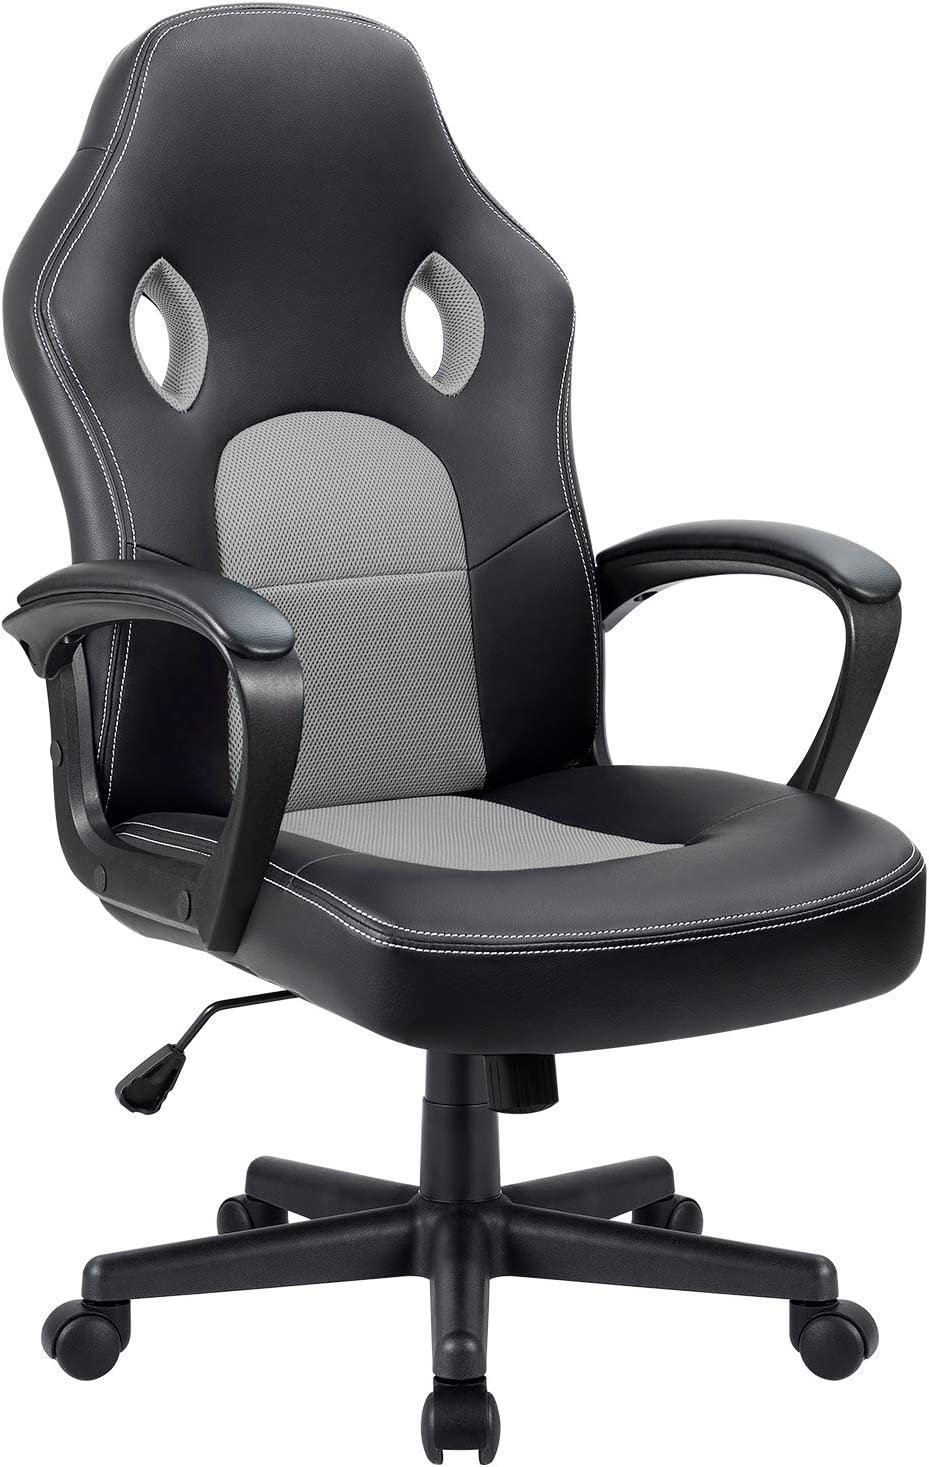 Furmax Office Chair Desk Leather Gaming Chair, High Back Ergonomic Adjustable Racing Chair,Task Swivel Executive Computer Chair Headrest and Lumbar Support (Grey)